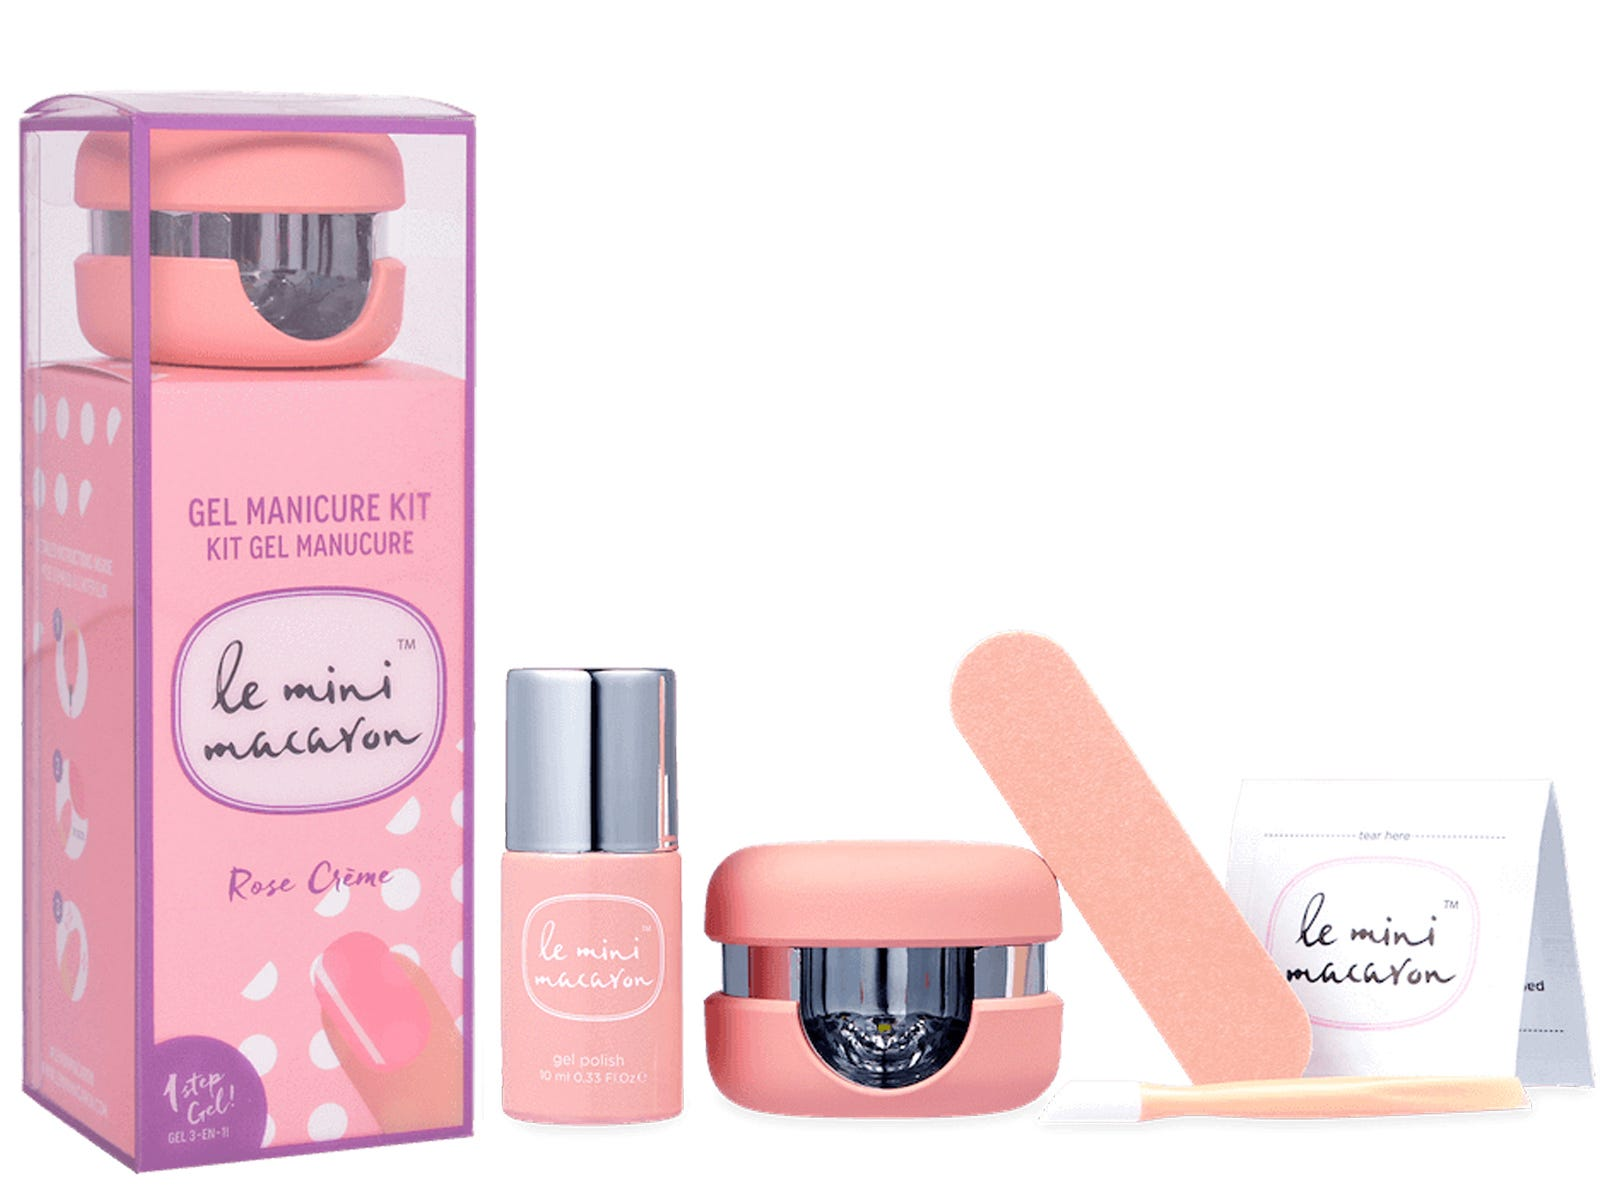 A kit with a pink box, a bottle of light pink nail polish, a nail file, and a small round manicure lamp